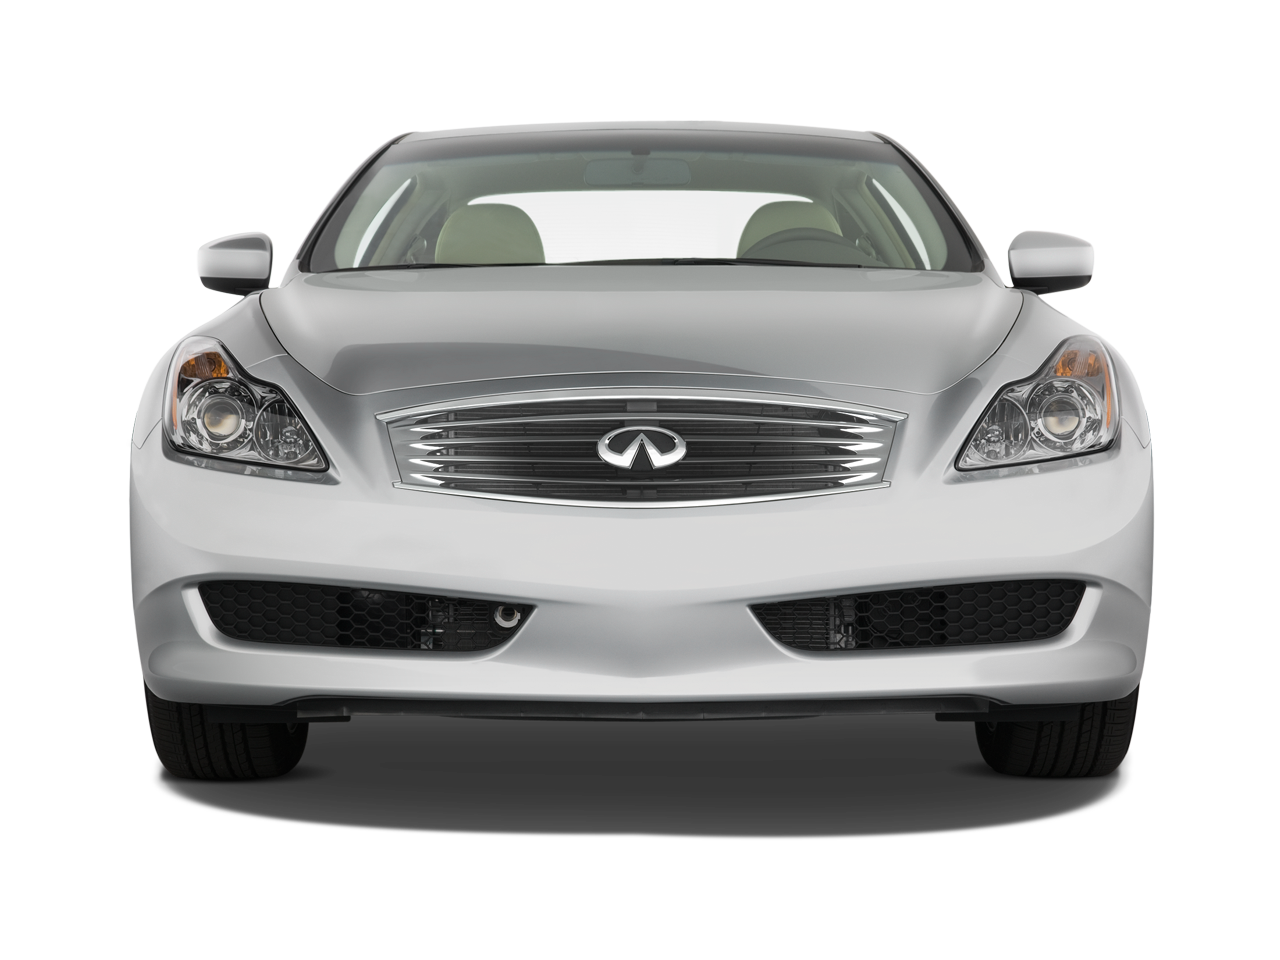 Fourth place 2008 infiniti g37 coupe 2008 top 8 cars 55100 vanachro Image collections